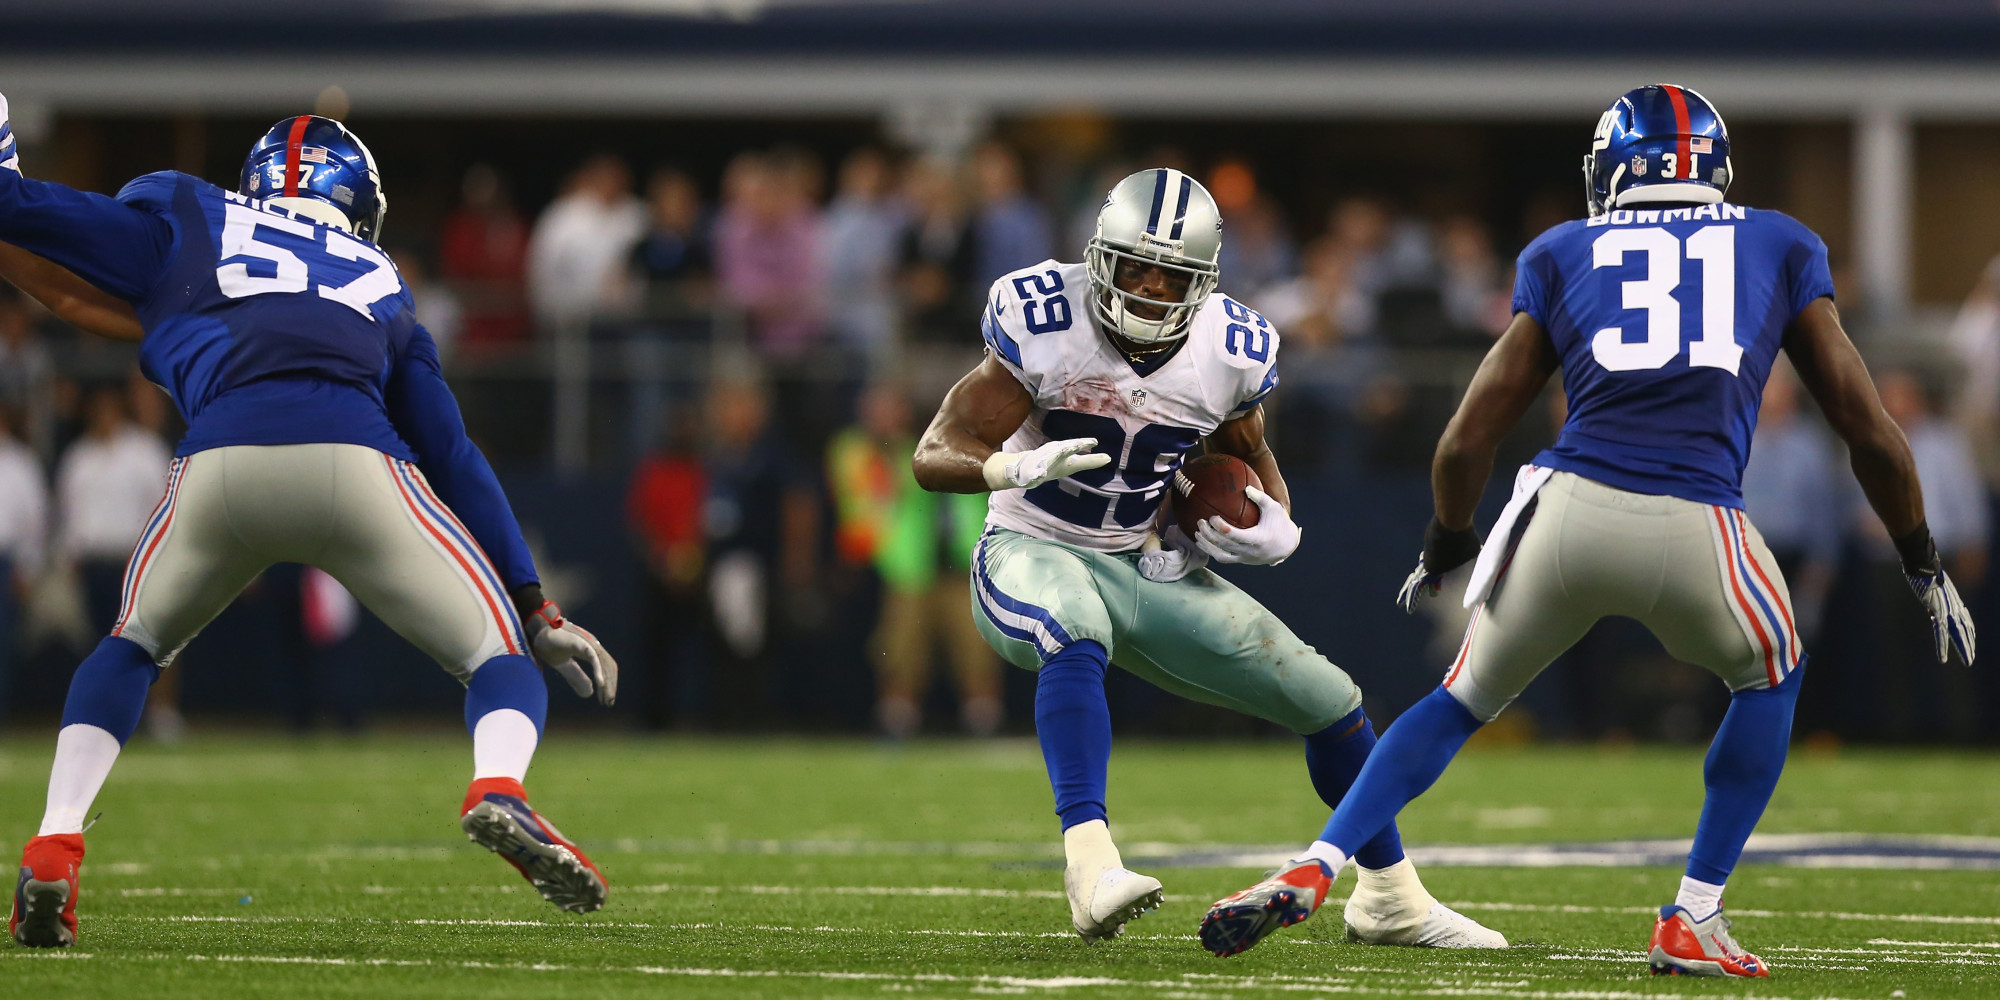 Cowboys Blog - Reliving The Giants Second Visit to AT&T Stadium